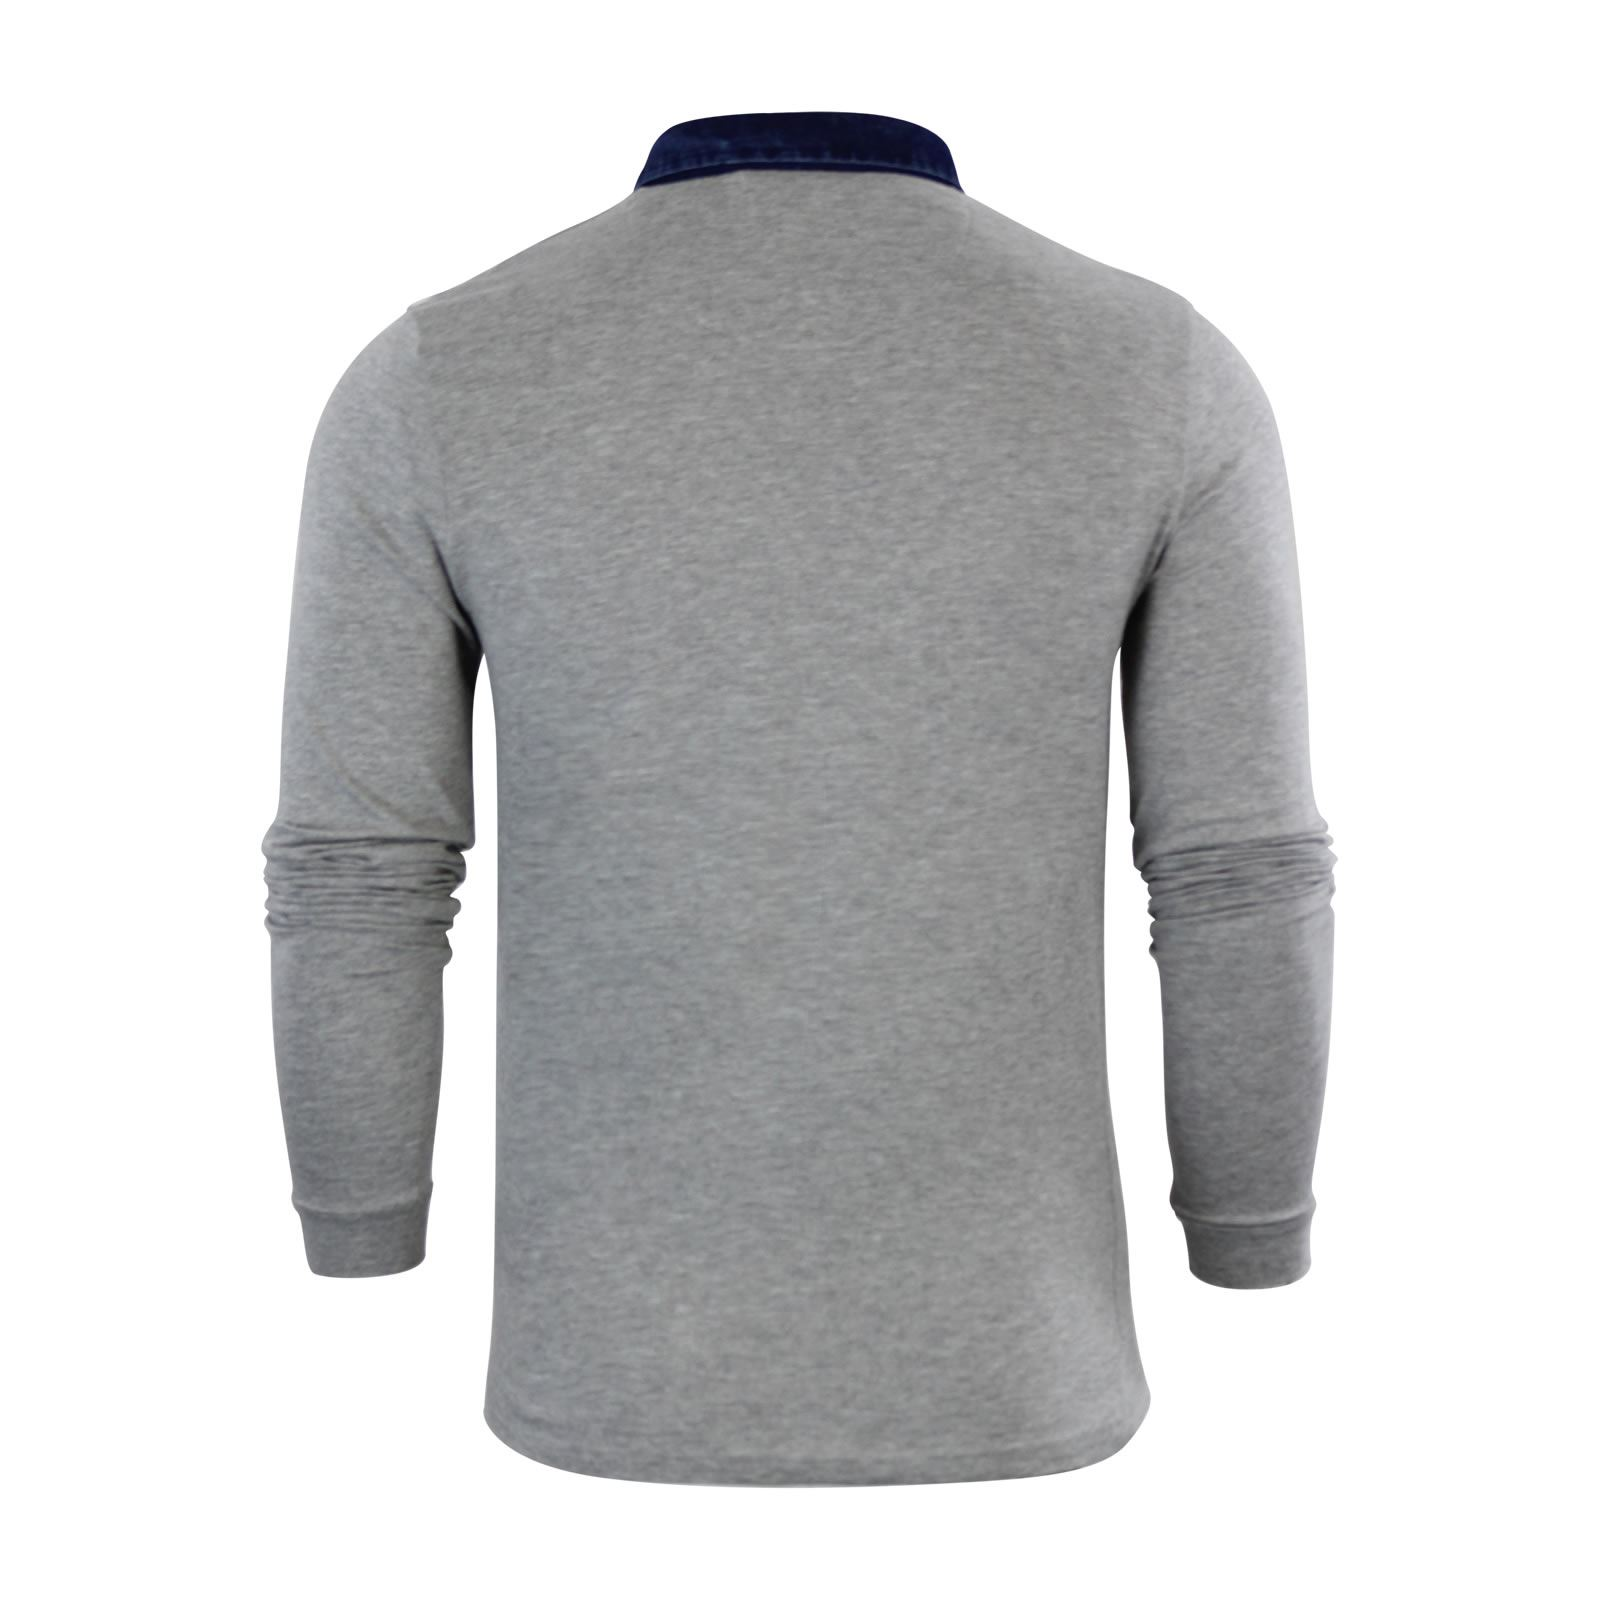 Mens-Polo-Shirt-Brave-Soul-Long-Sleeve-Collared-Top-In-Various-Styles thumbnail 9